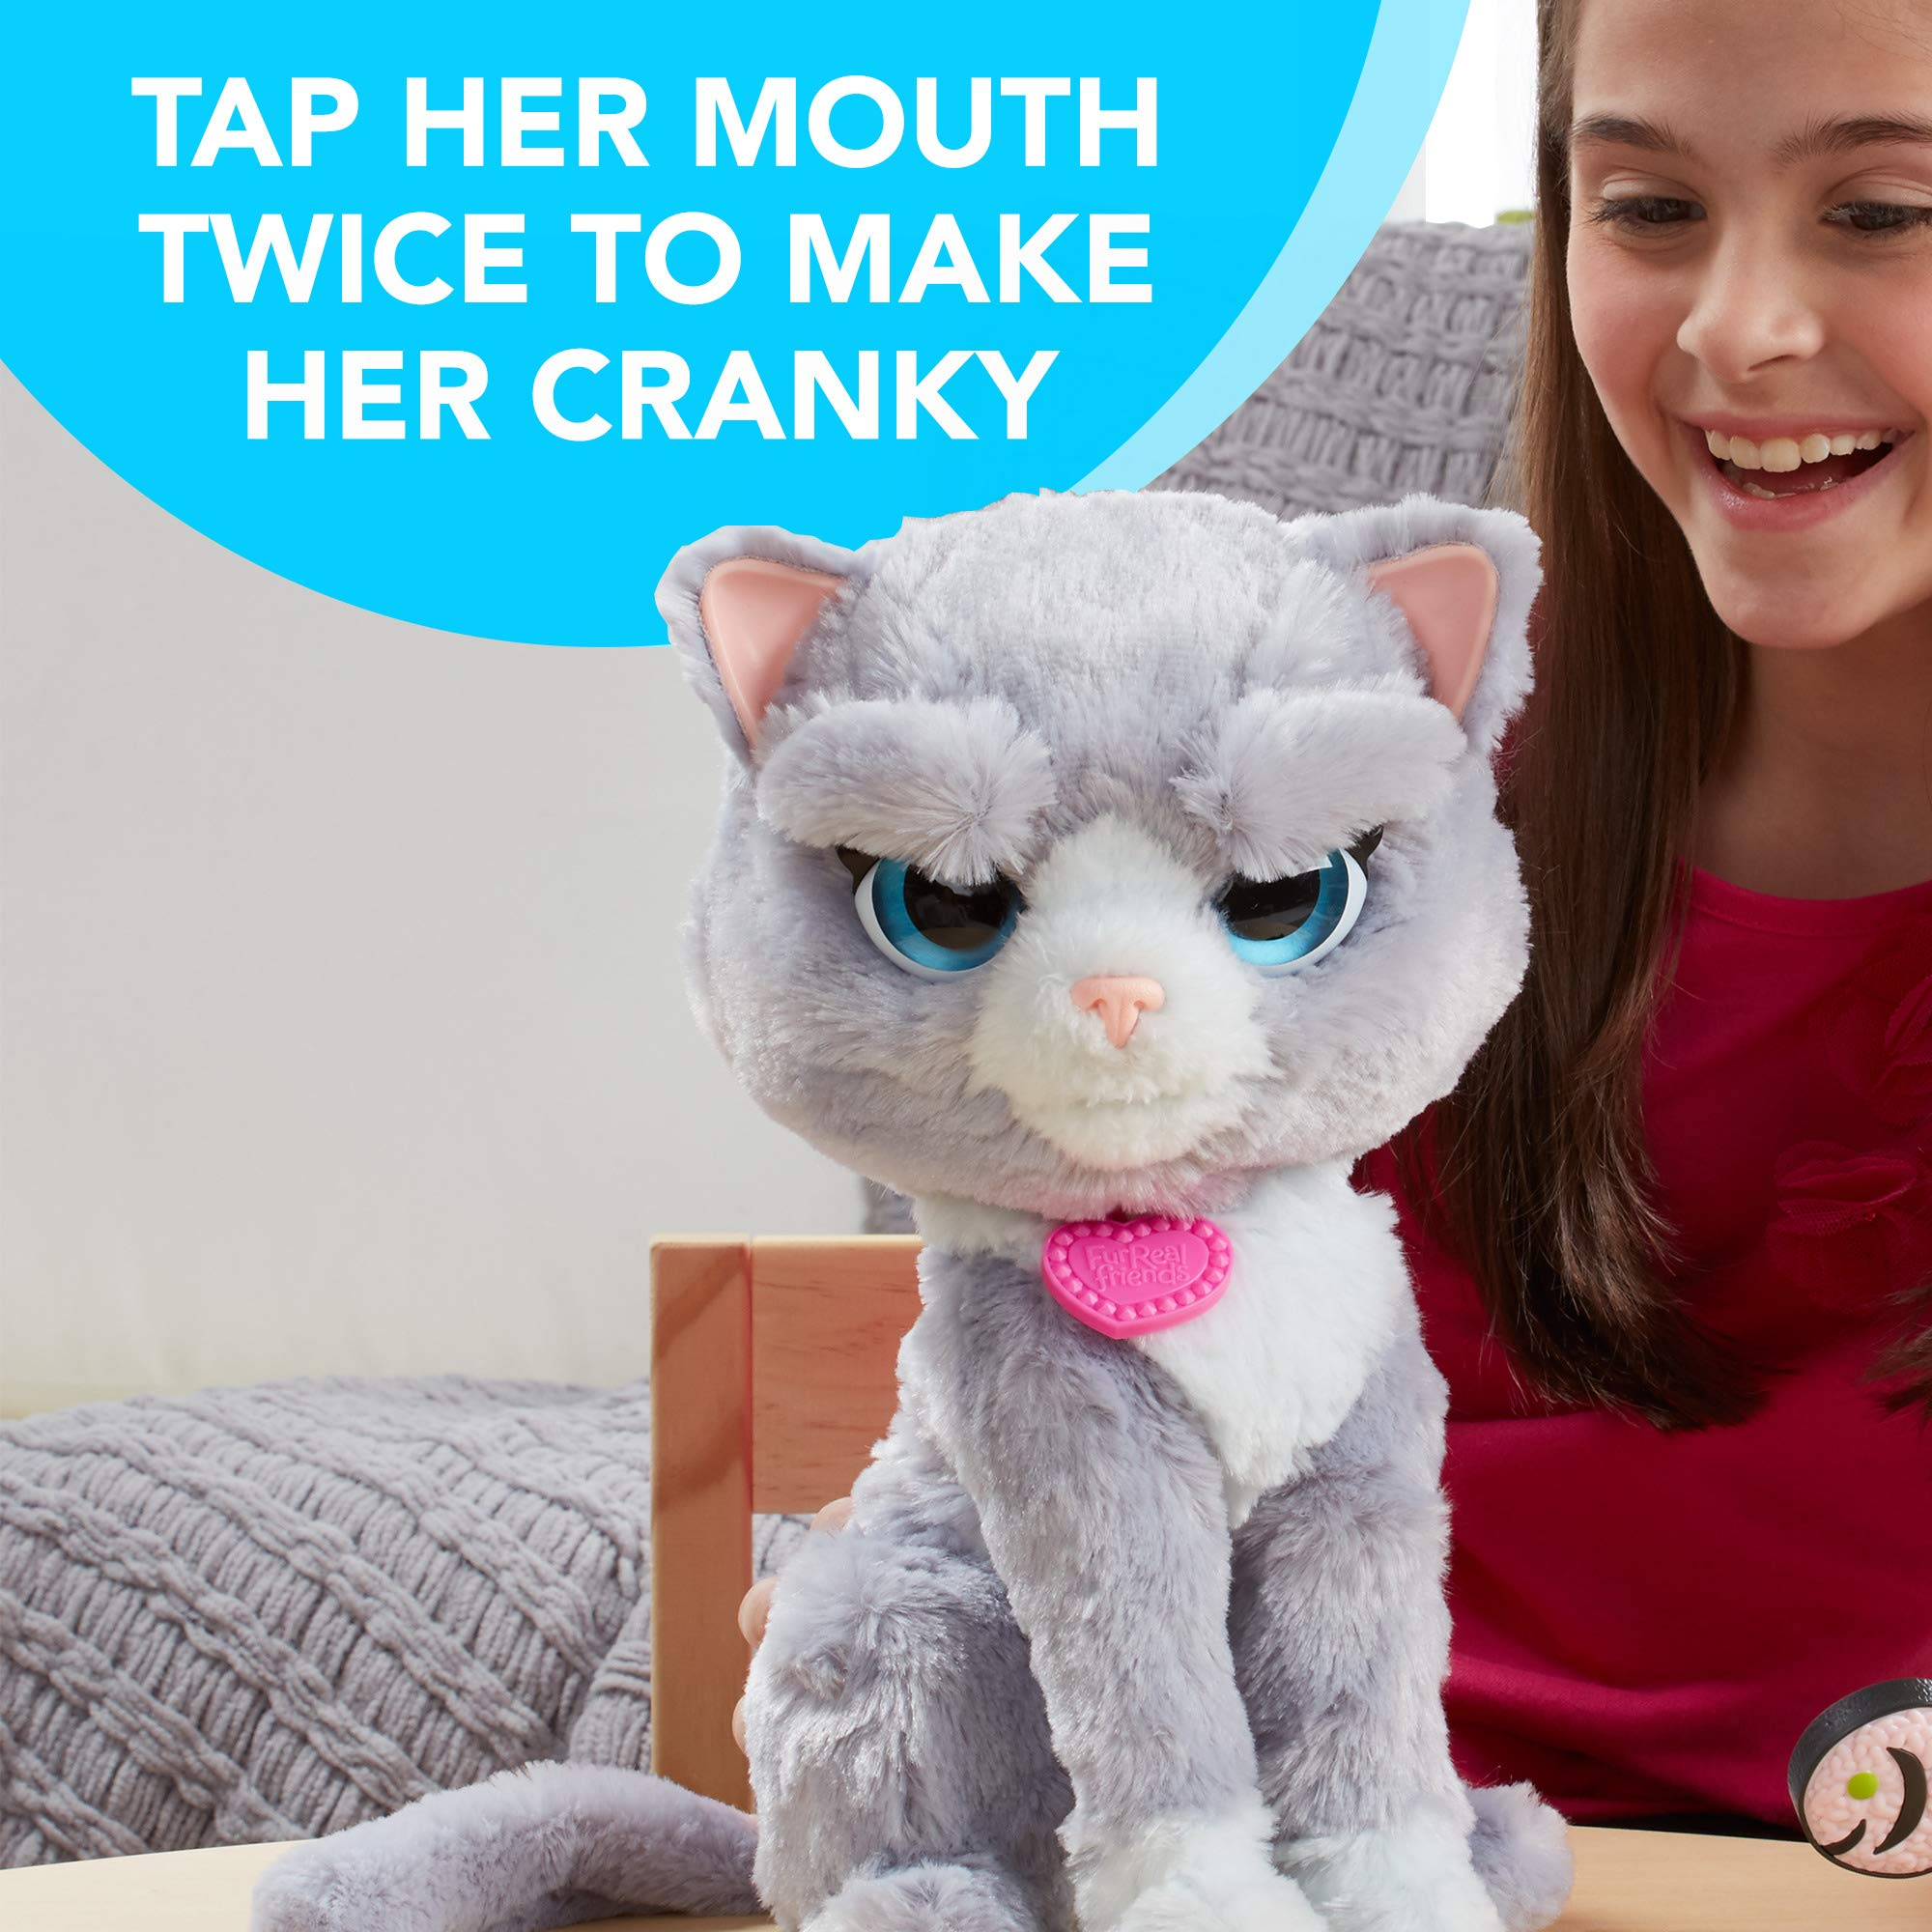 FurReal B5936AF1 Bootsie Interactive Plush Kitty Toy, Ages 4 & Up by FurReal (Image #4)